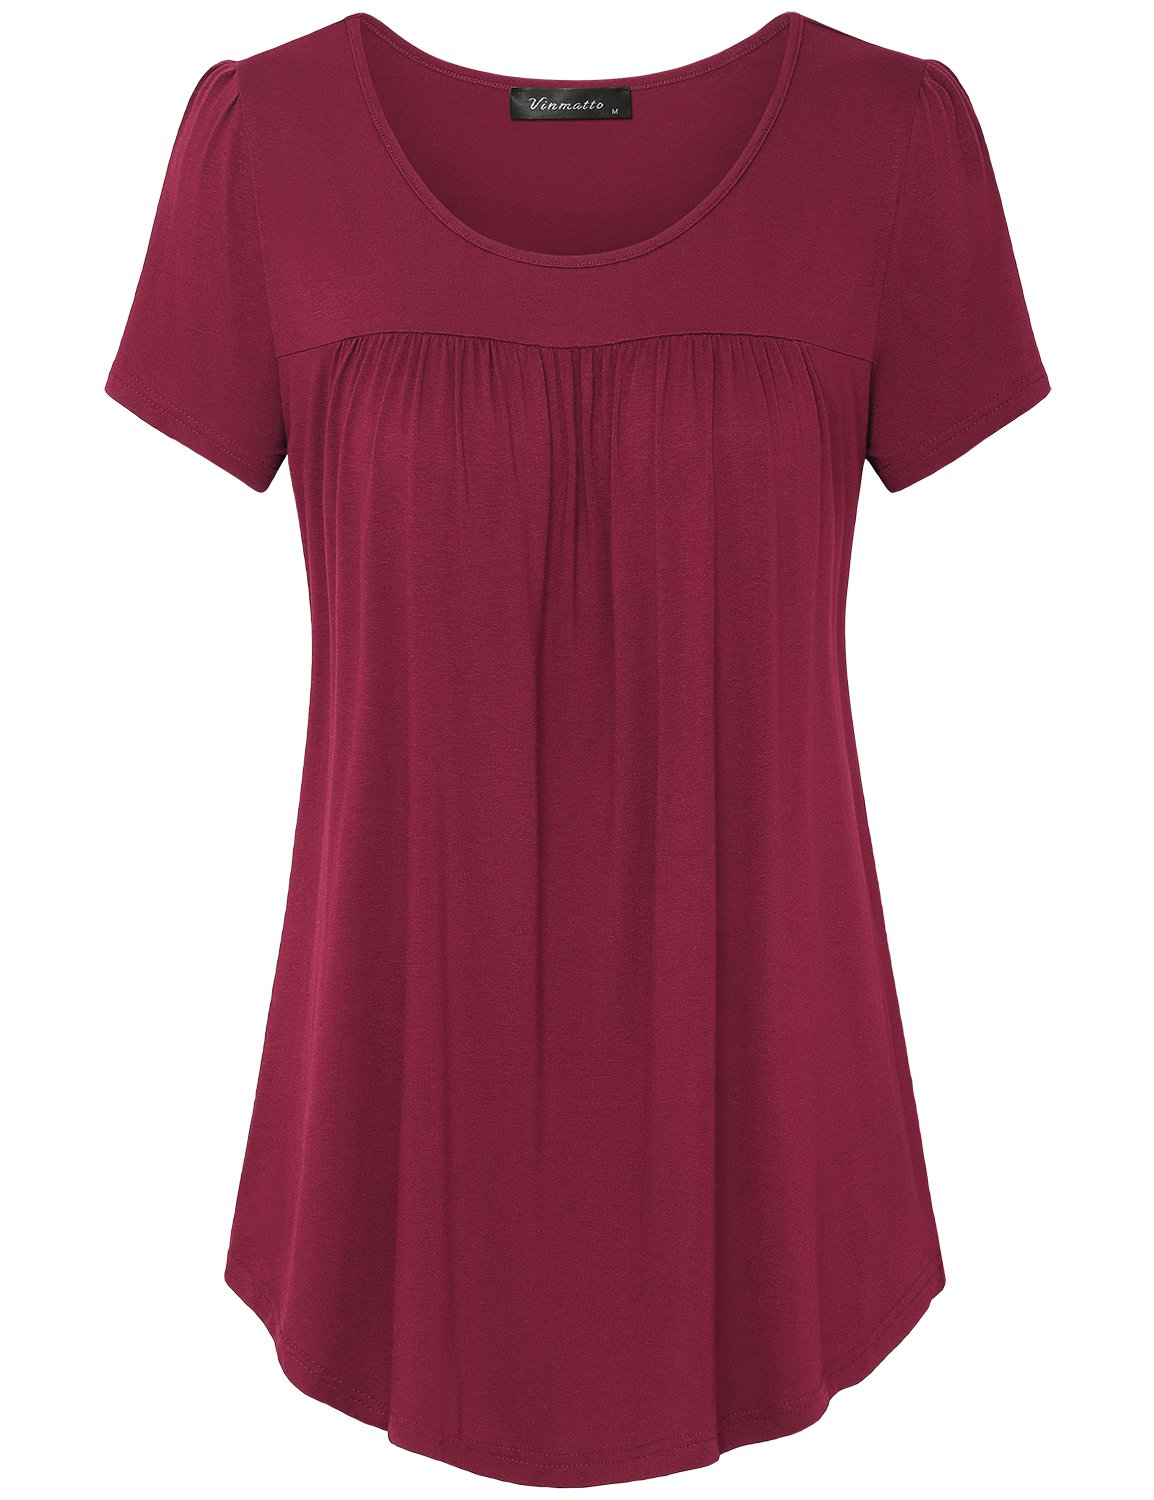 Vinmatto Women's Scoop Neck Pleated Blouse Top Tunic Shirt (XL, Purple Red)